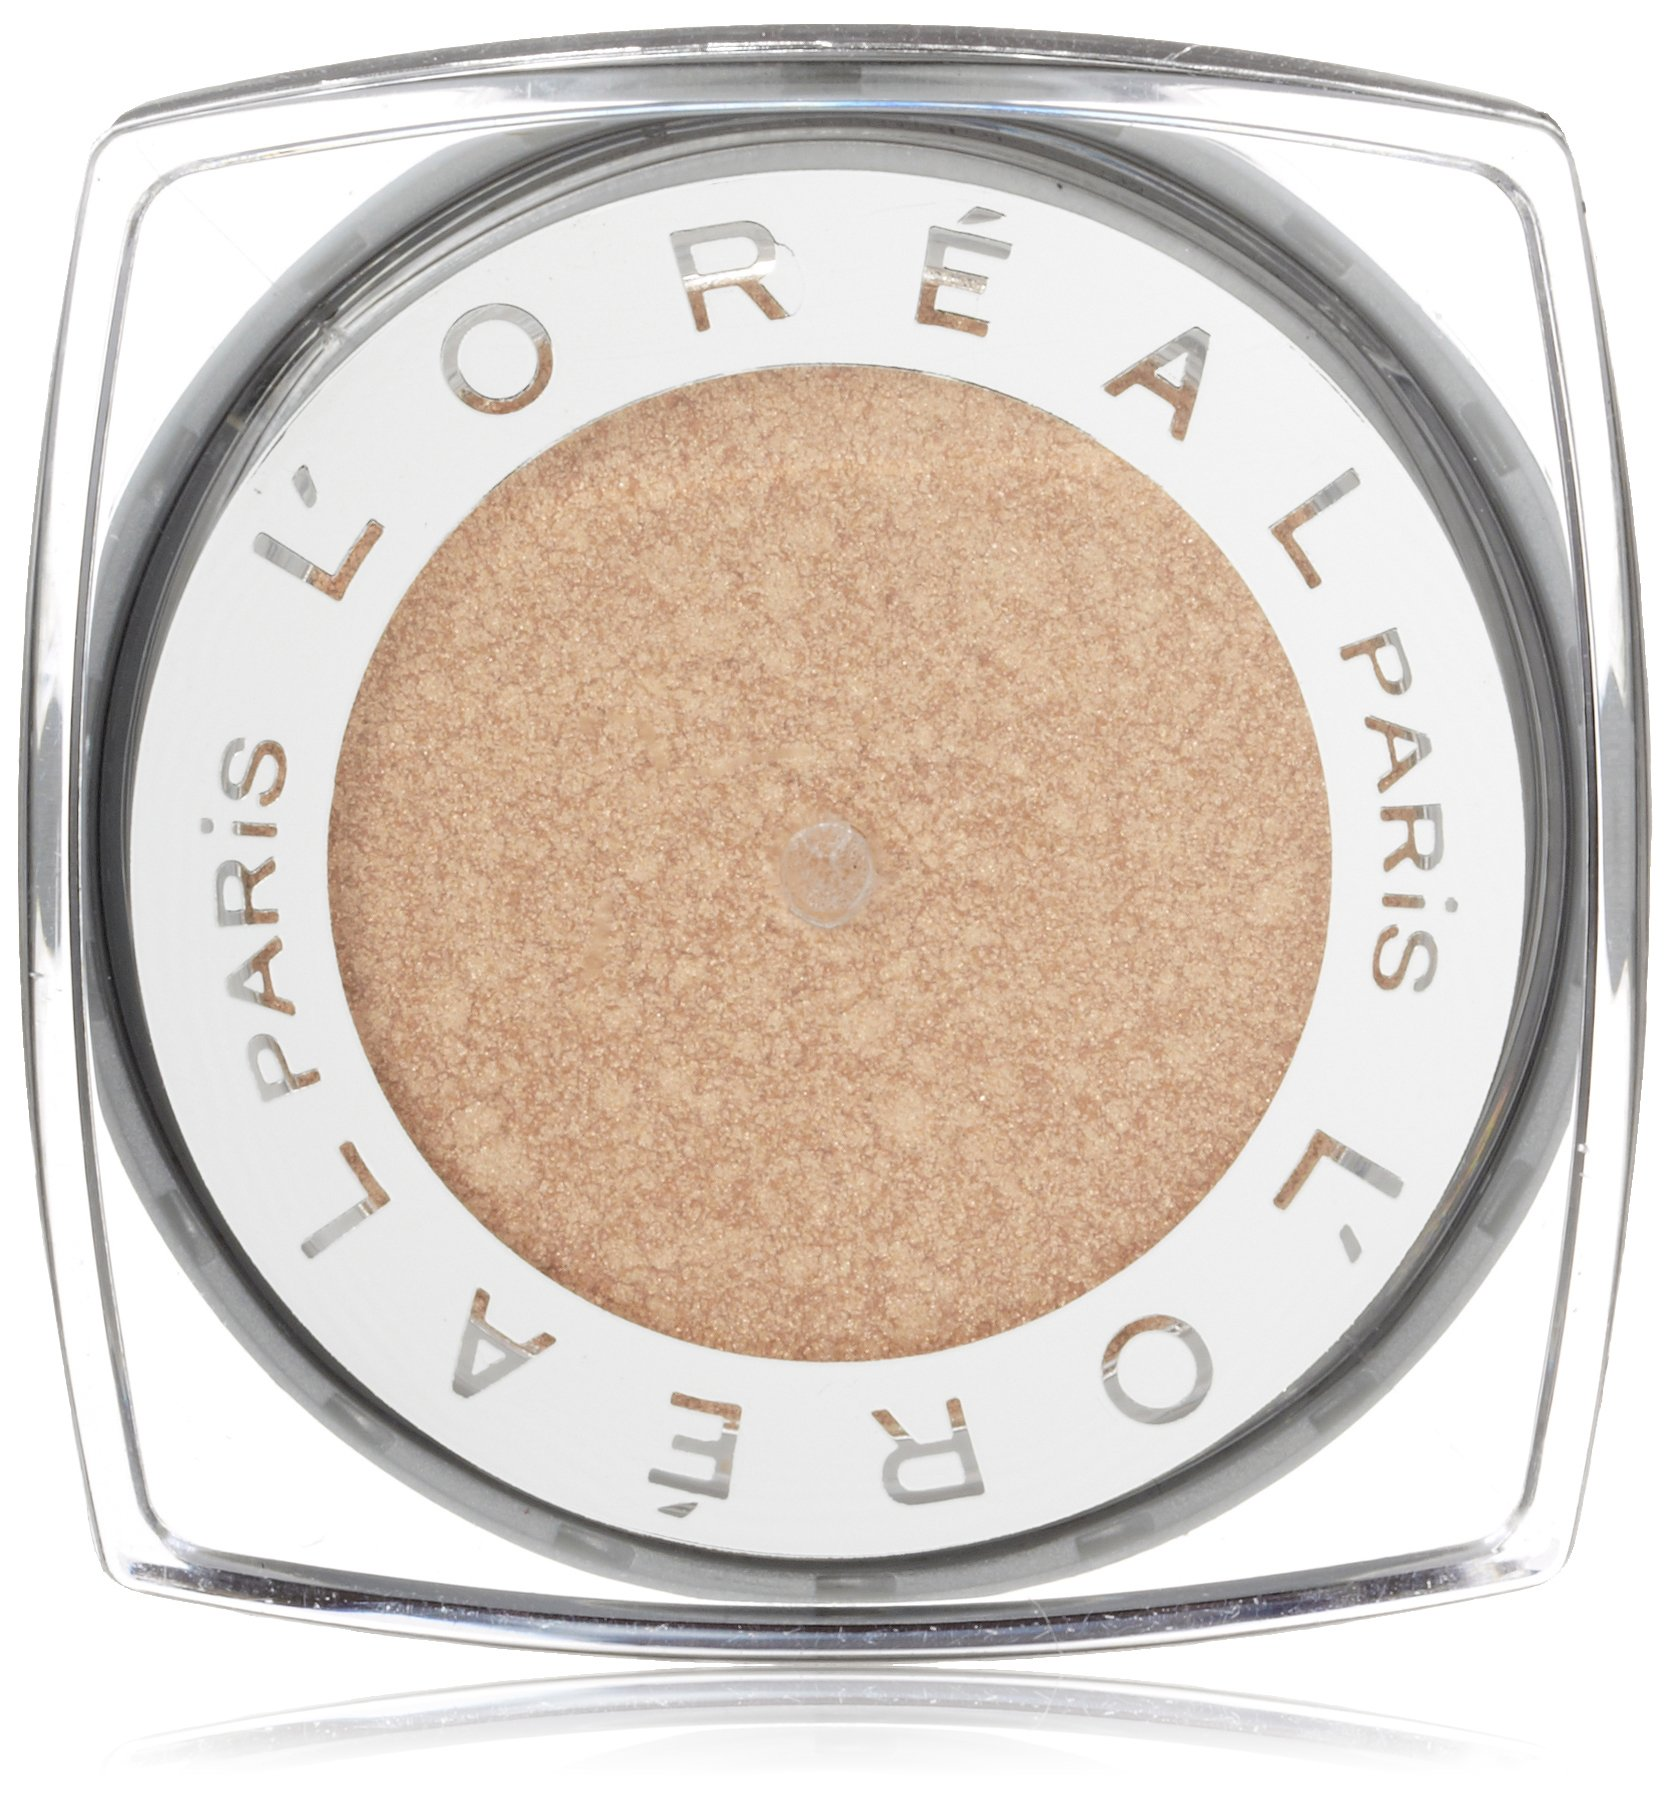 L'Oréal Paris Infallible 24HR Shadow, Eternal Sunshine, 0.12 oz.